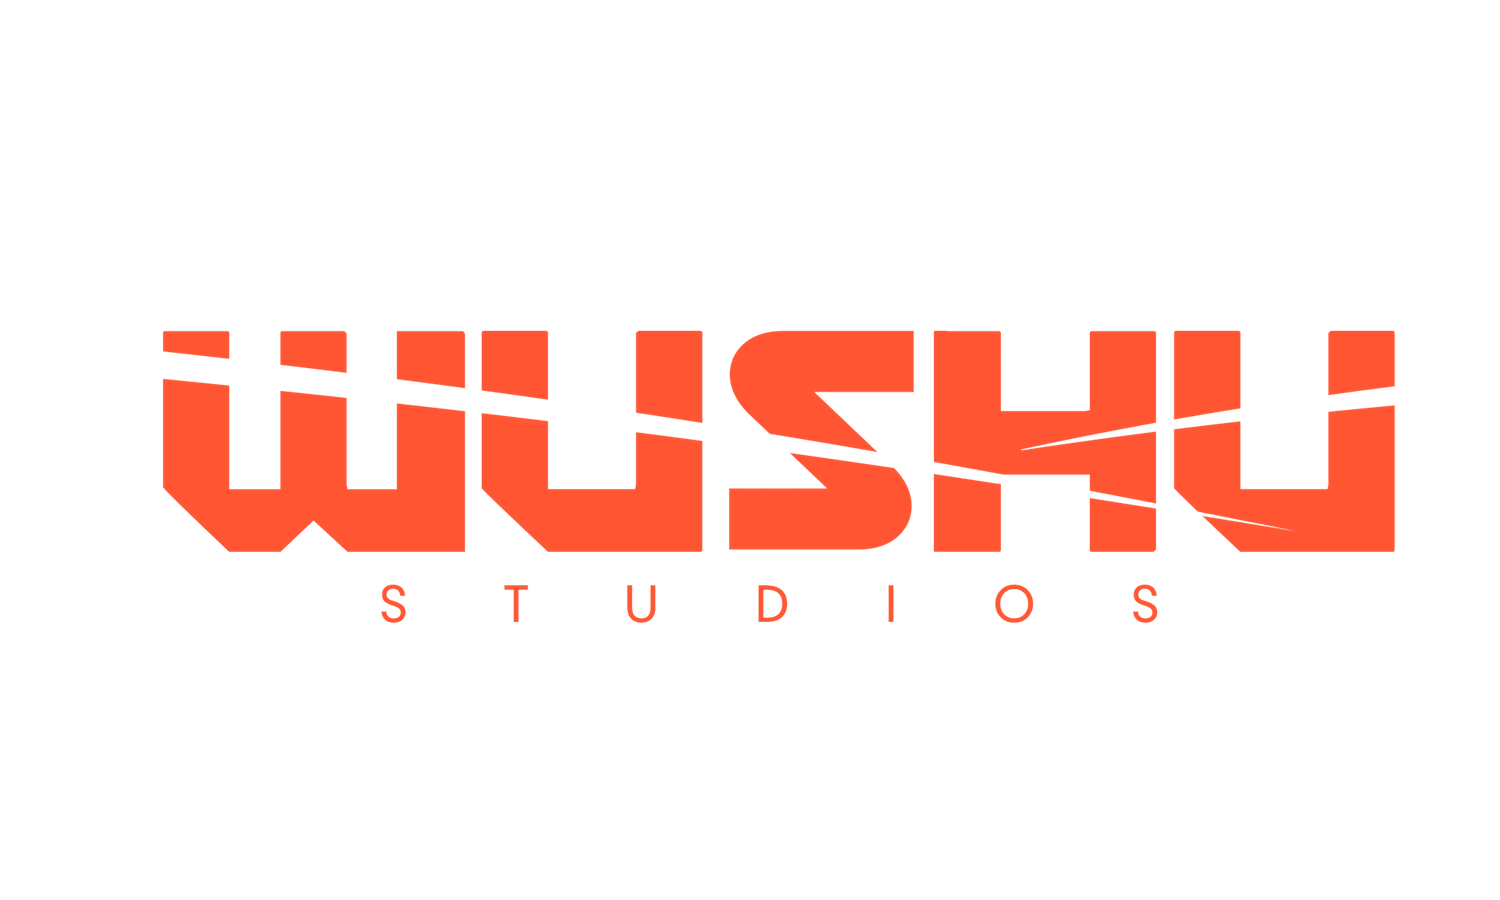 Former Motorstorm and Driveclub devs announce formation of Wushu Studios